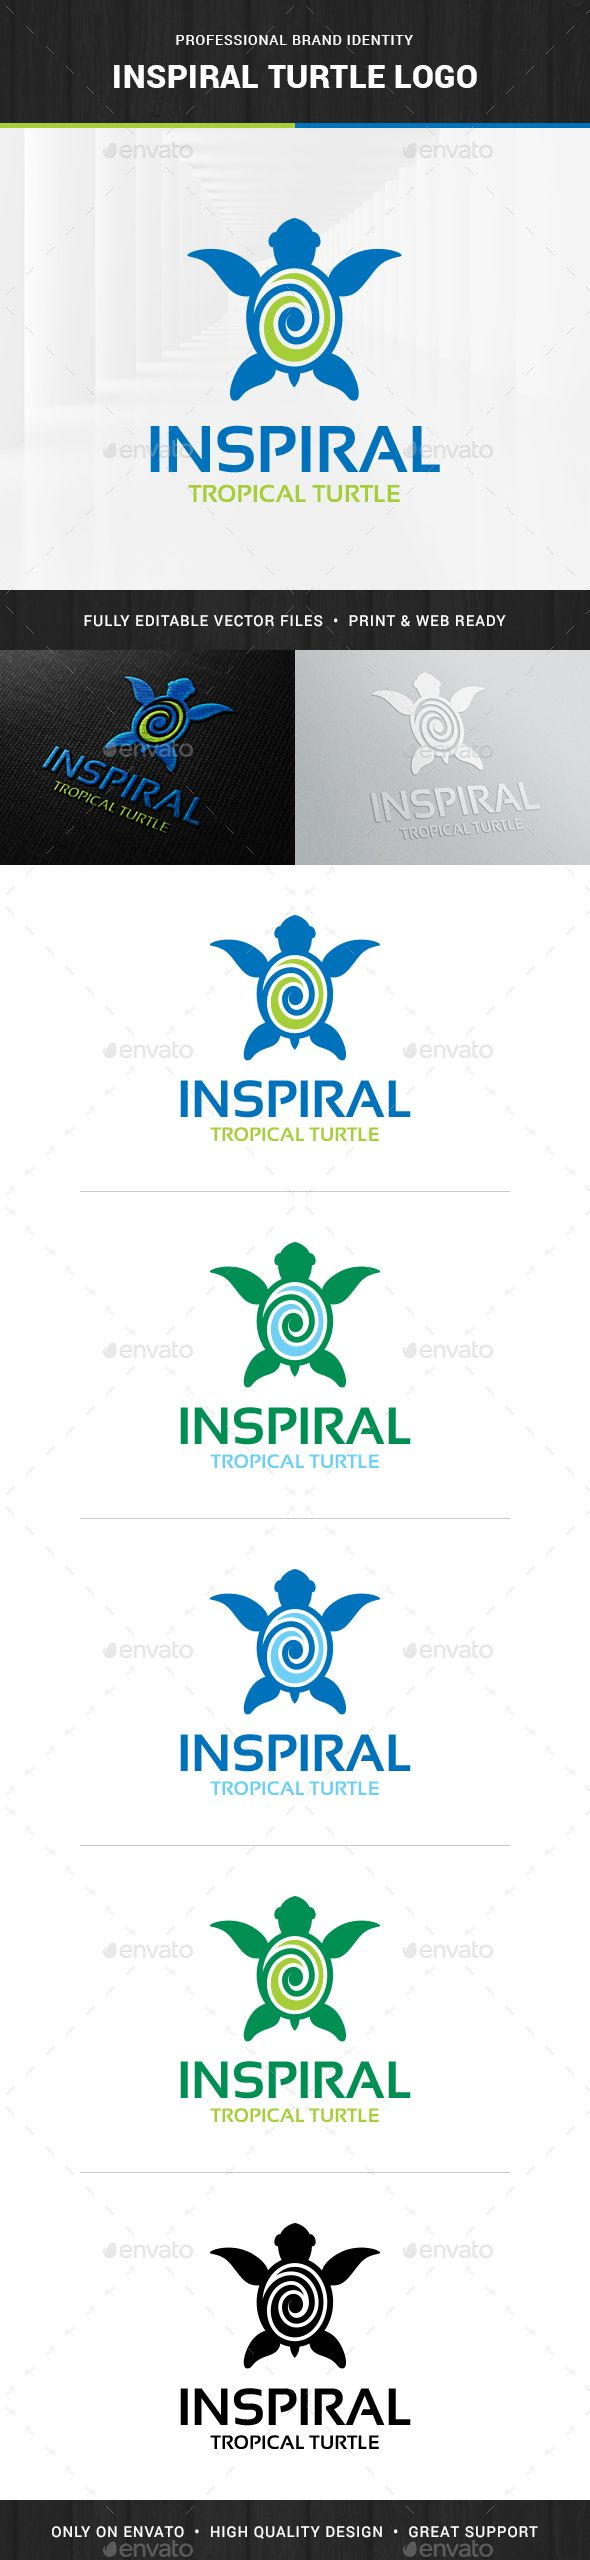 Inspiral turtle logo template logo templates turtle and template biocorpaavc